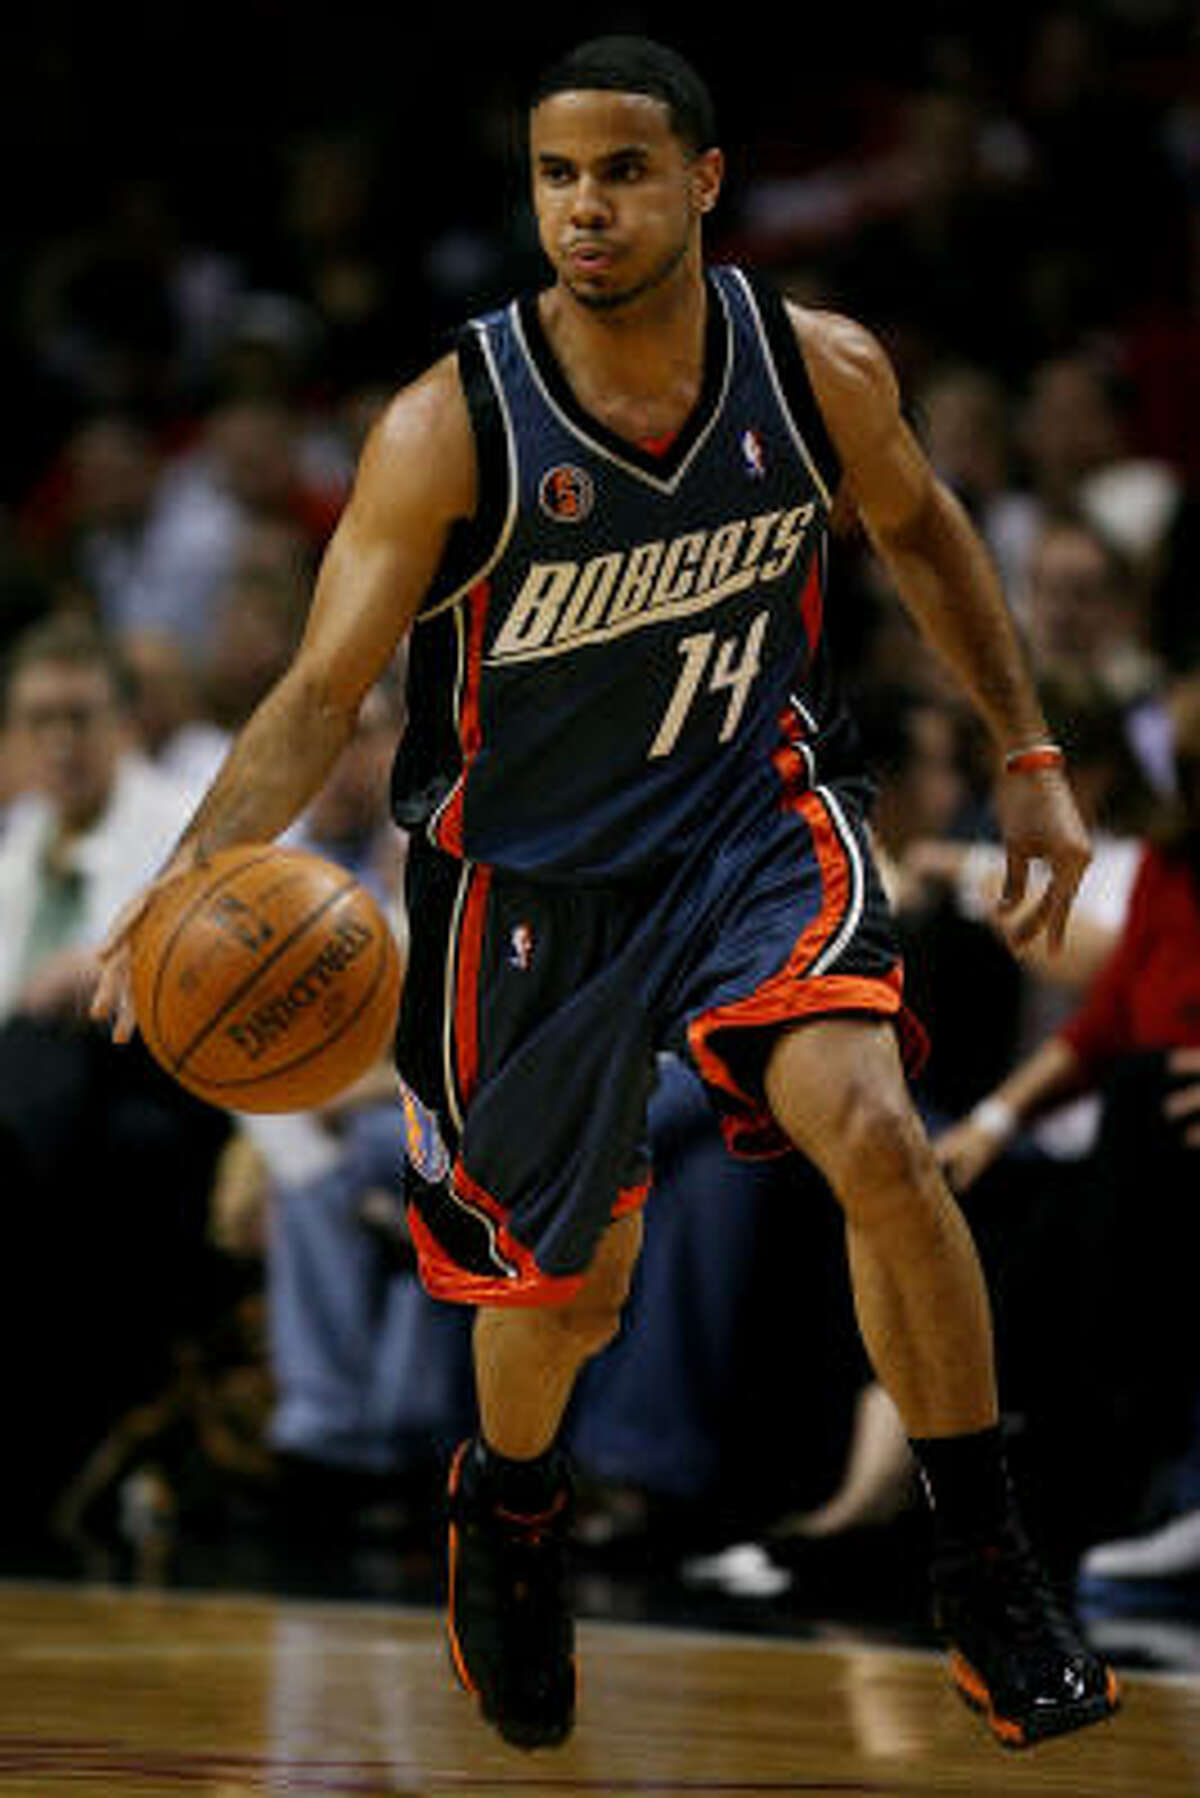 2008: D.J. Augustin (Hightower) Augustin, who played one year at Hightower after evacuating New Orleans in the wake of Hurricane Katrina, was taken with the ninth overall pick by the Charlotte Bobcats.